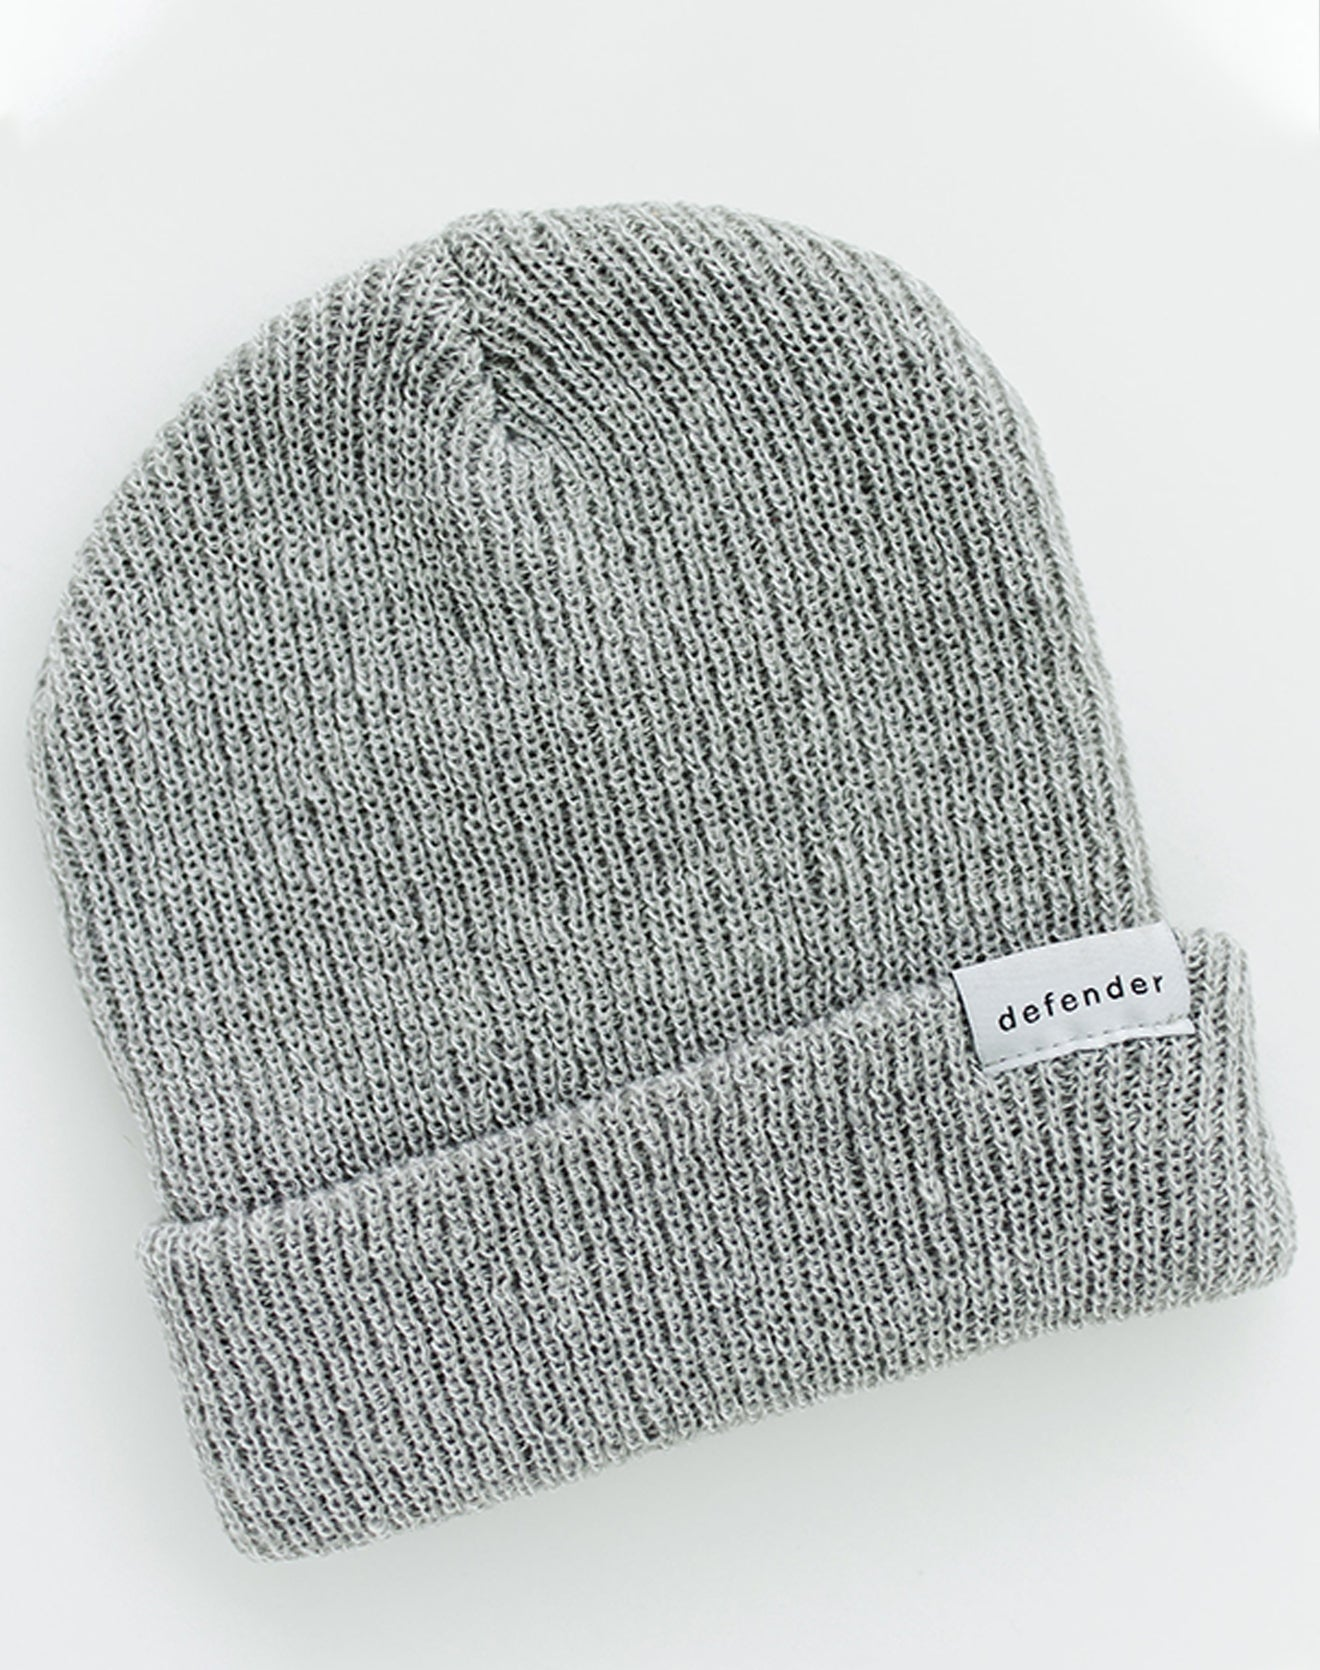 Defend Innocence Grey Beanie